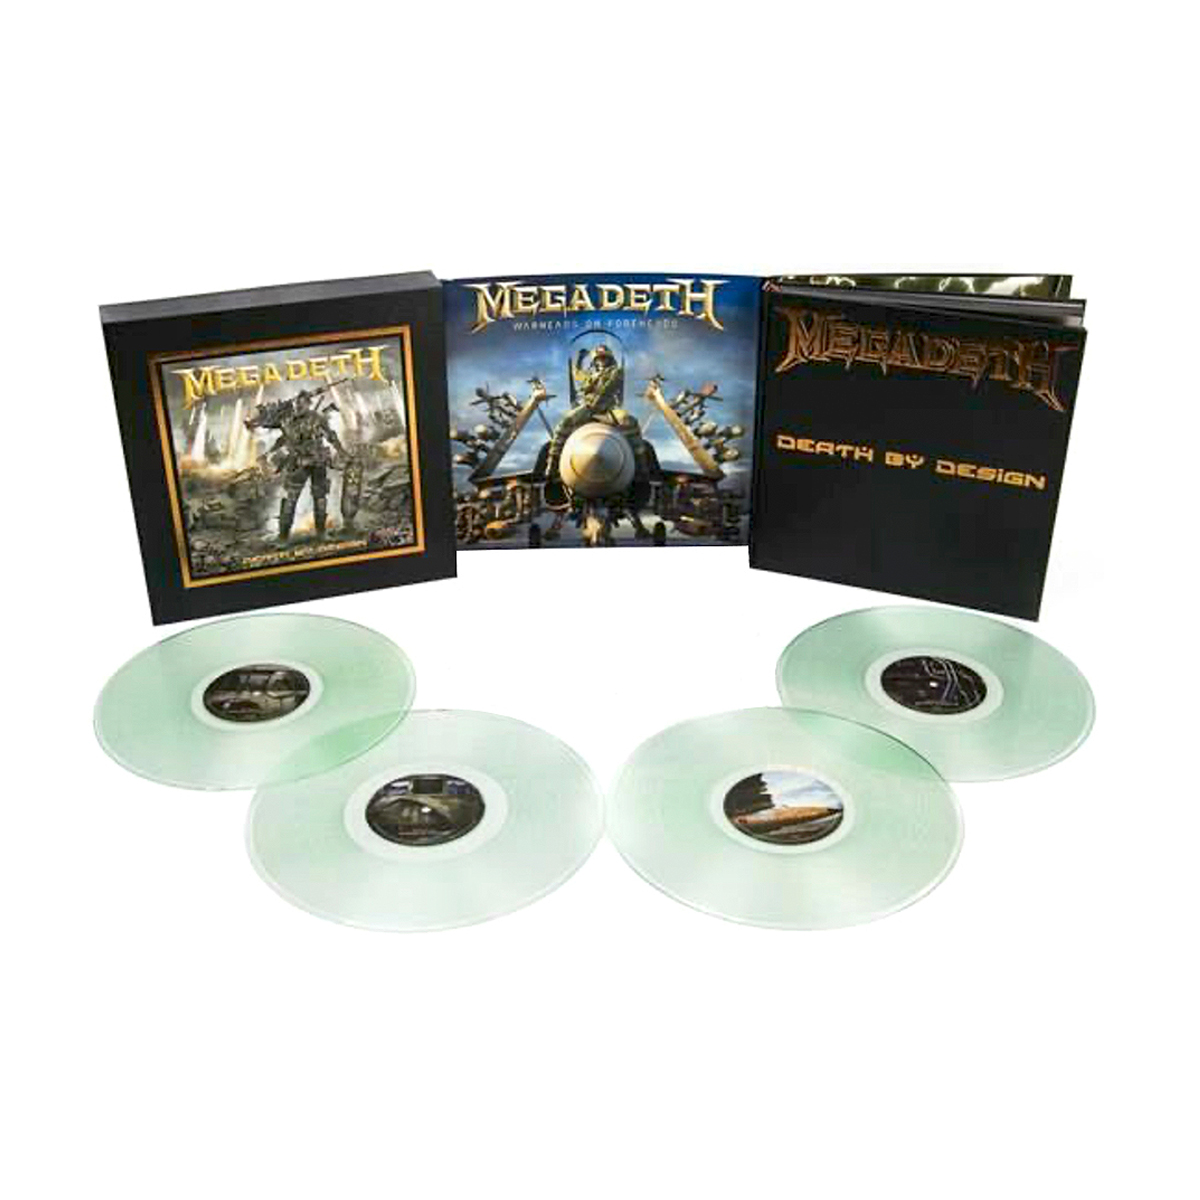 Megadeth - Warheads On Foreheads Clear 4LP + Death By Design Graphic Novel